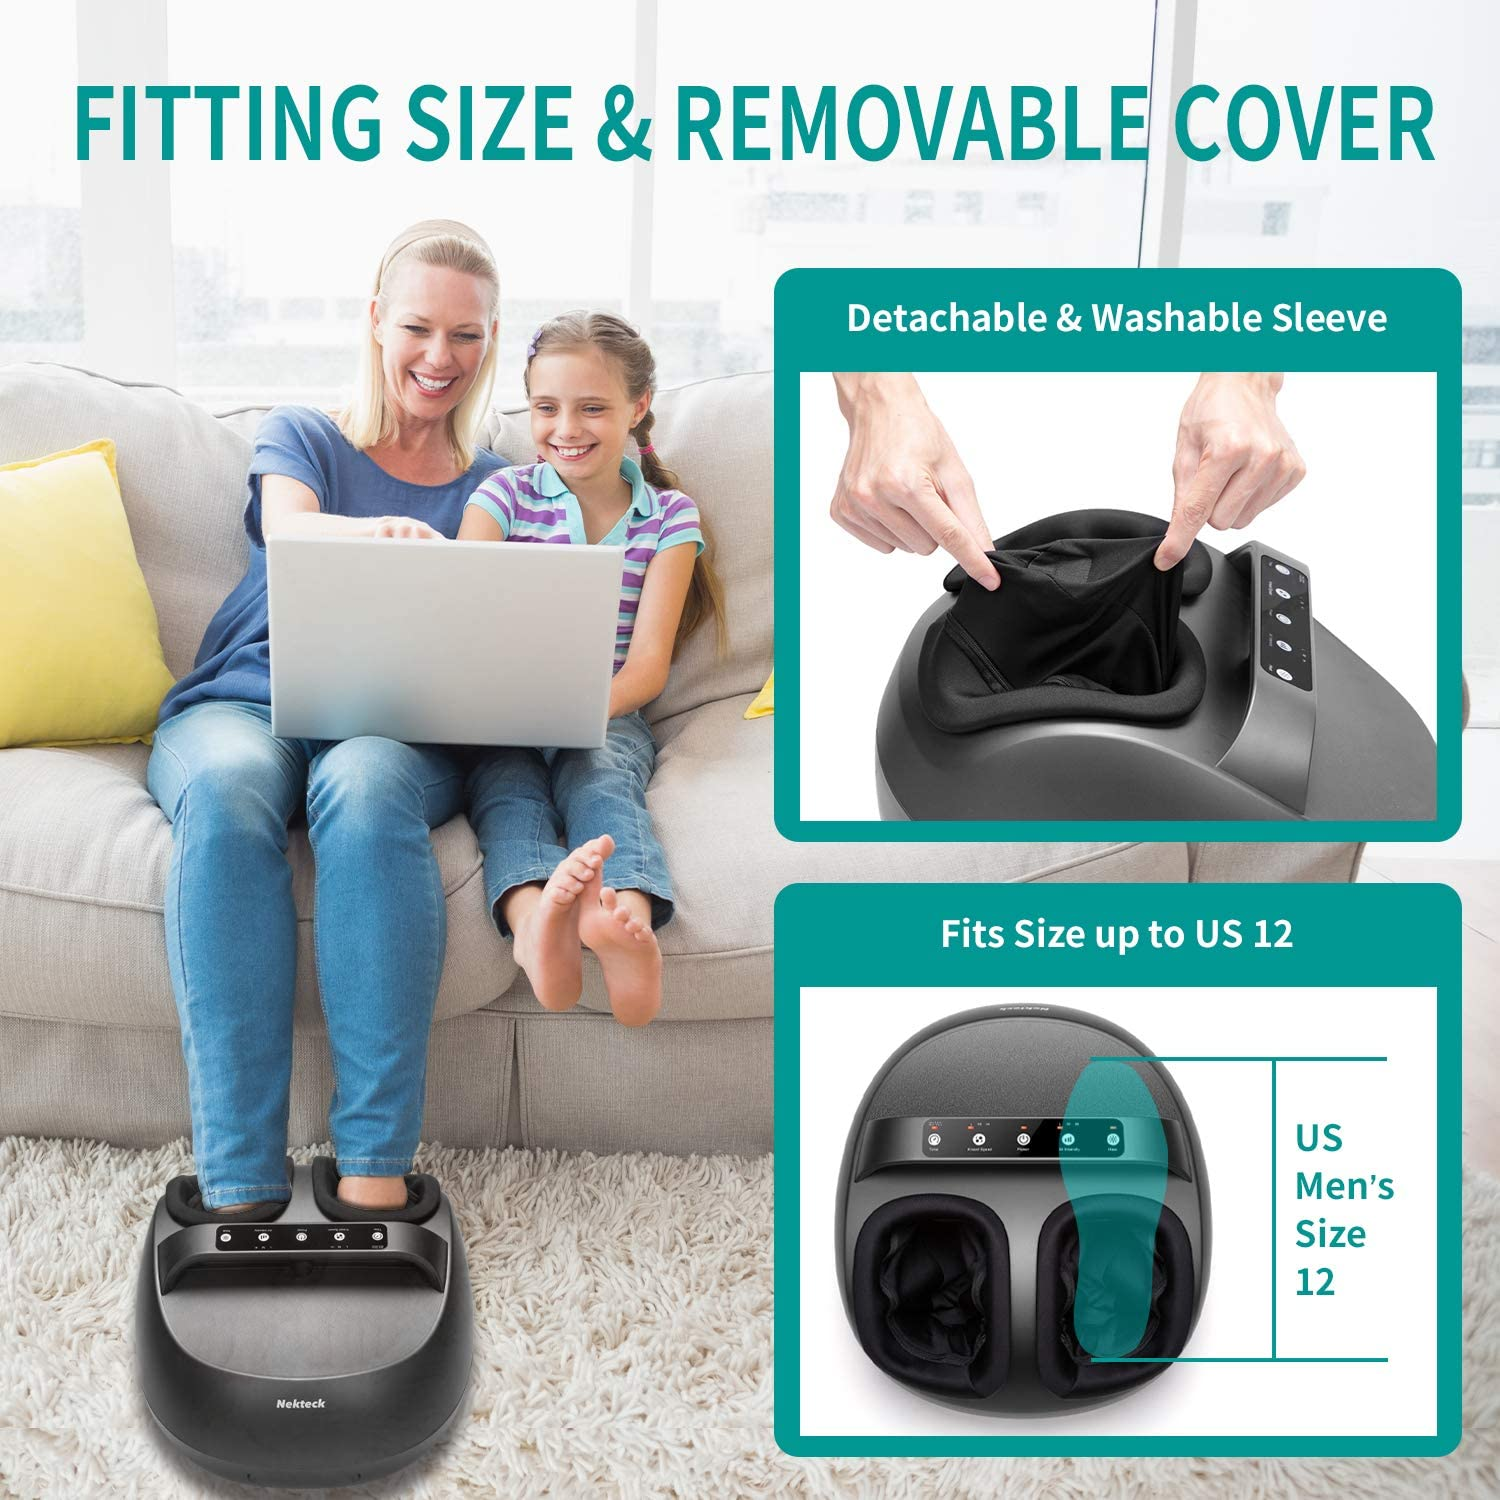 Nekteck Foot Massager Machine with Heat, Shiatsu Foot Massagers with Handle Design, 6 Mode with Kneading Rolling